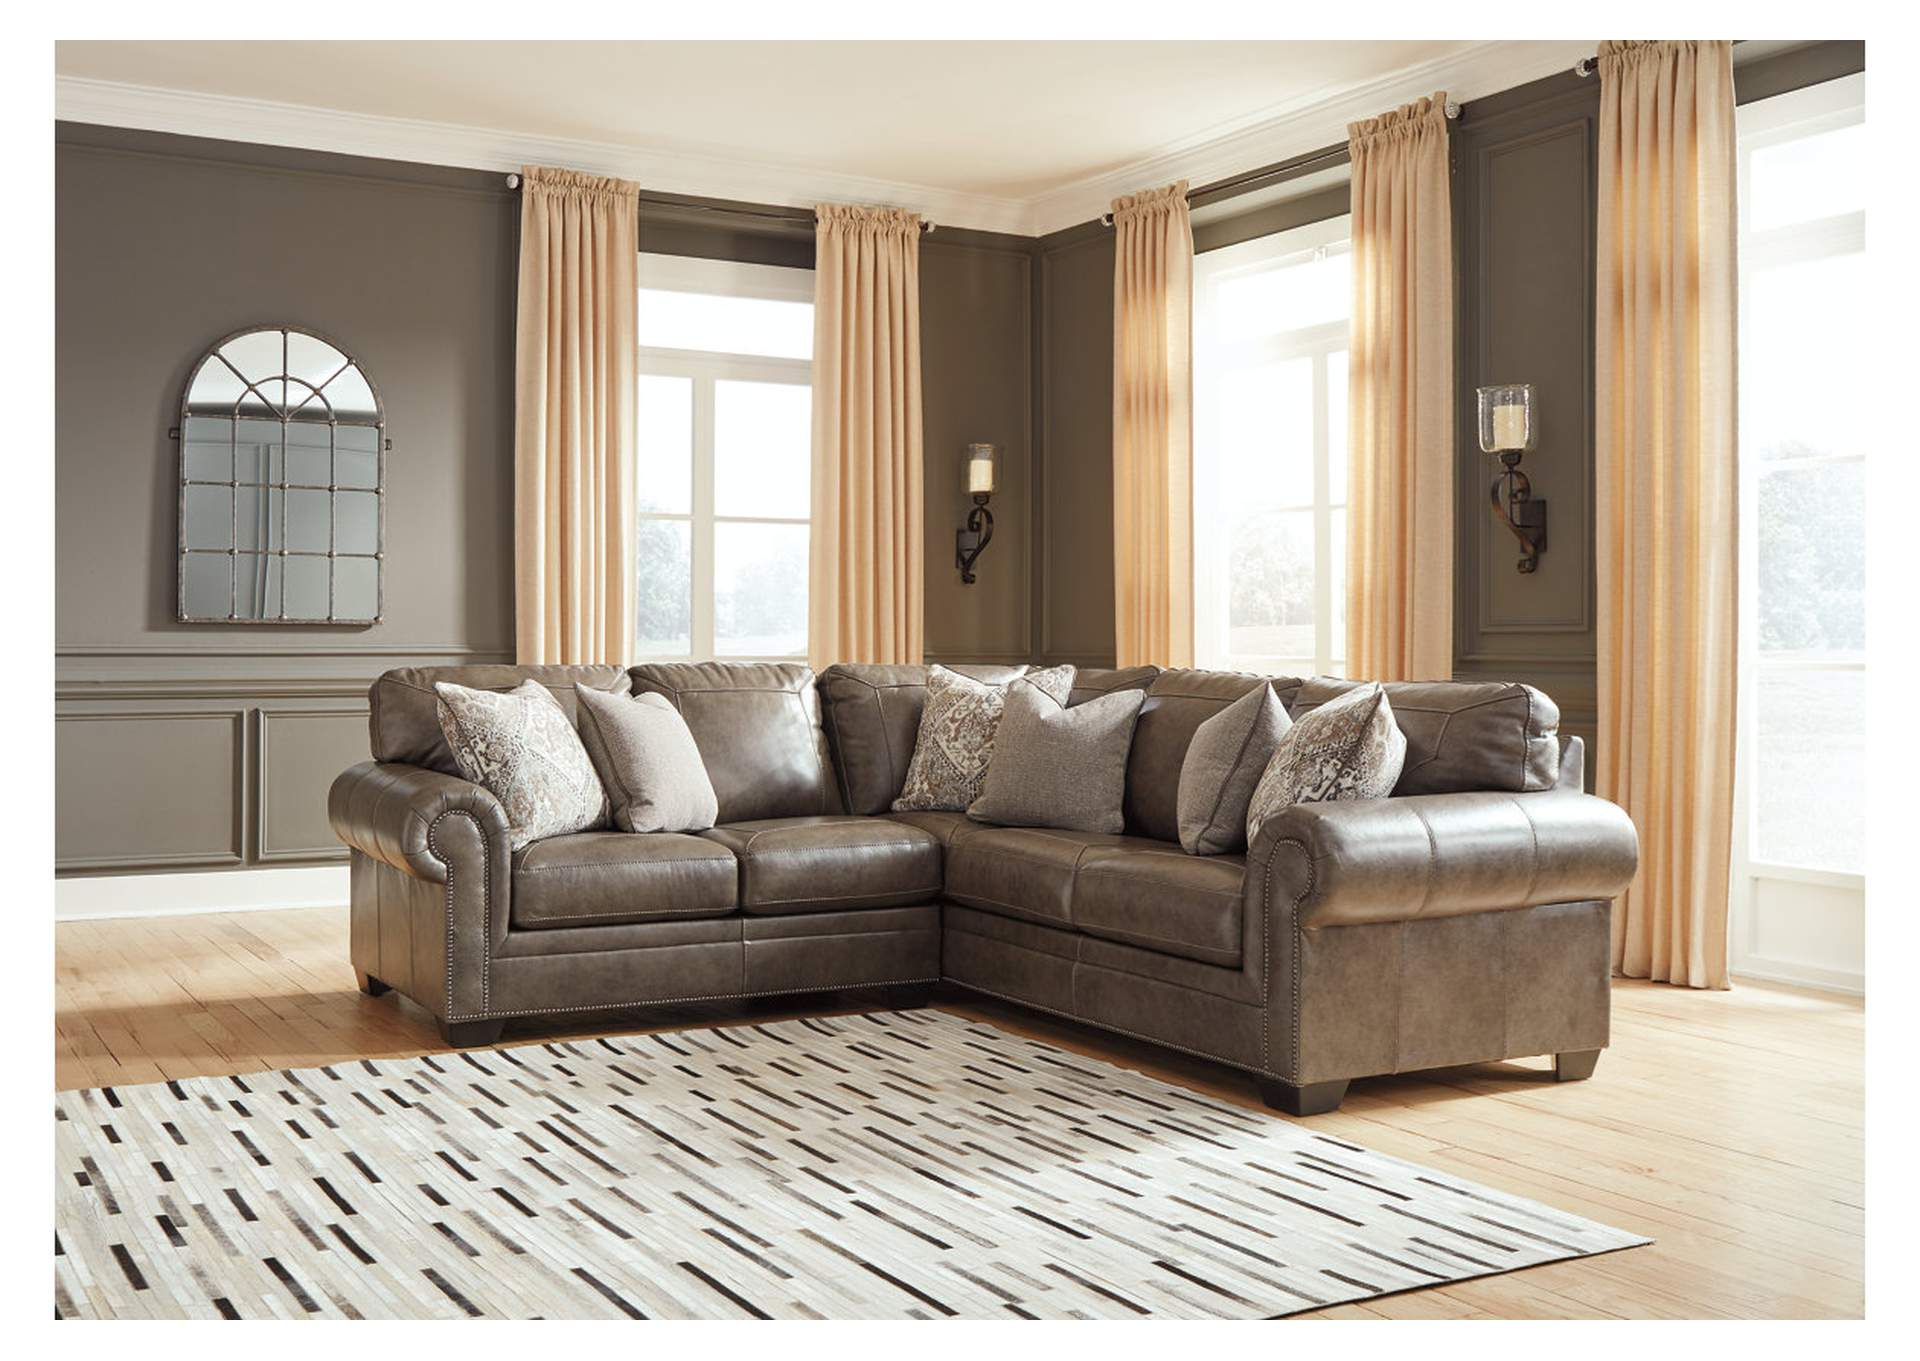 Roleson Quarry 2 Piece Sectional,Signature Design By Ashley